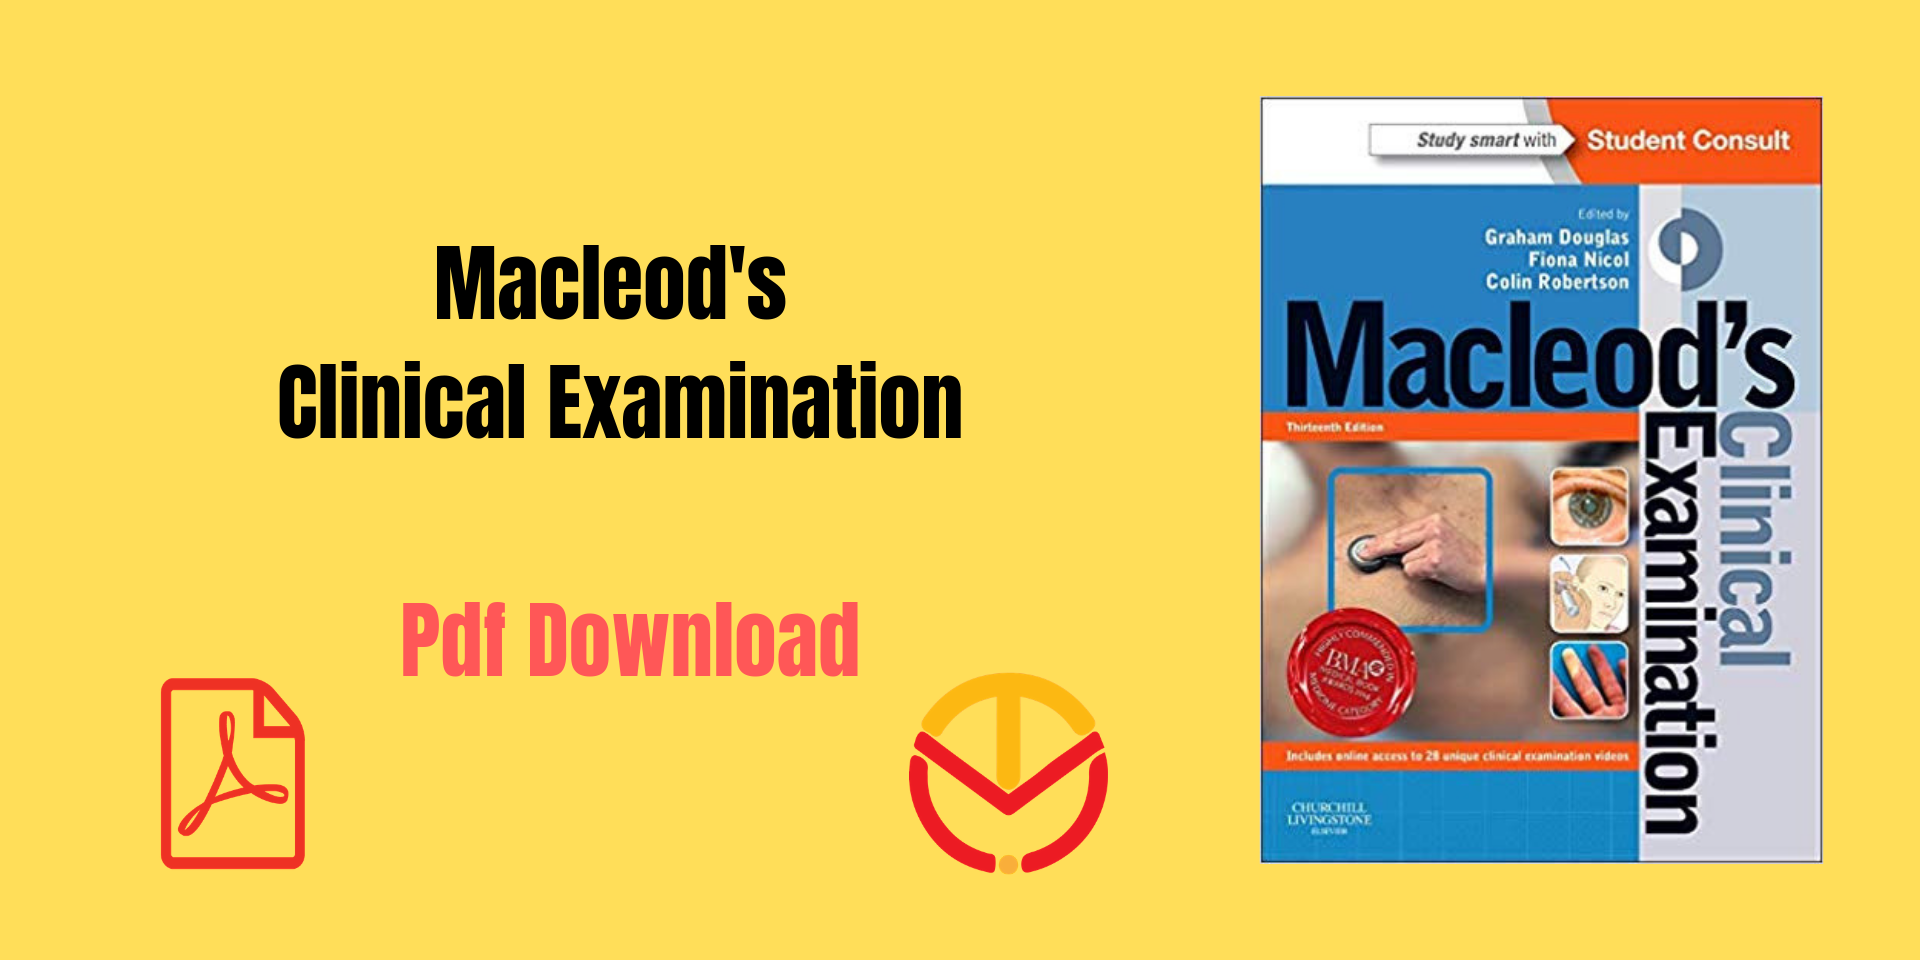 Macleod's Clinical Examination Pdf